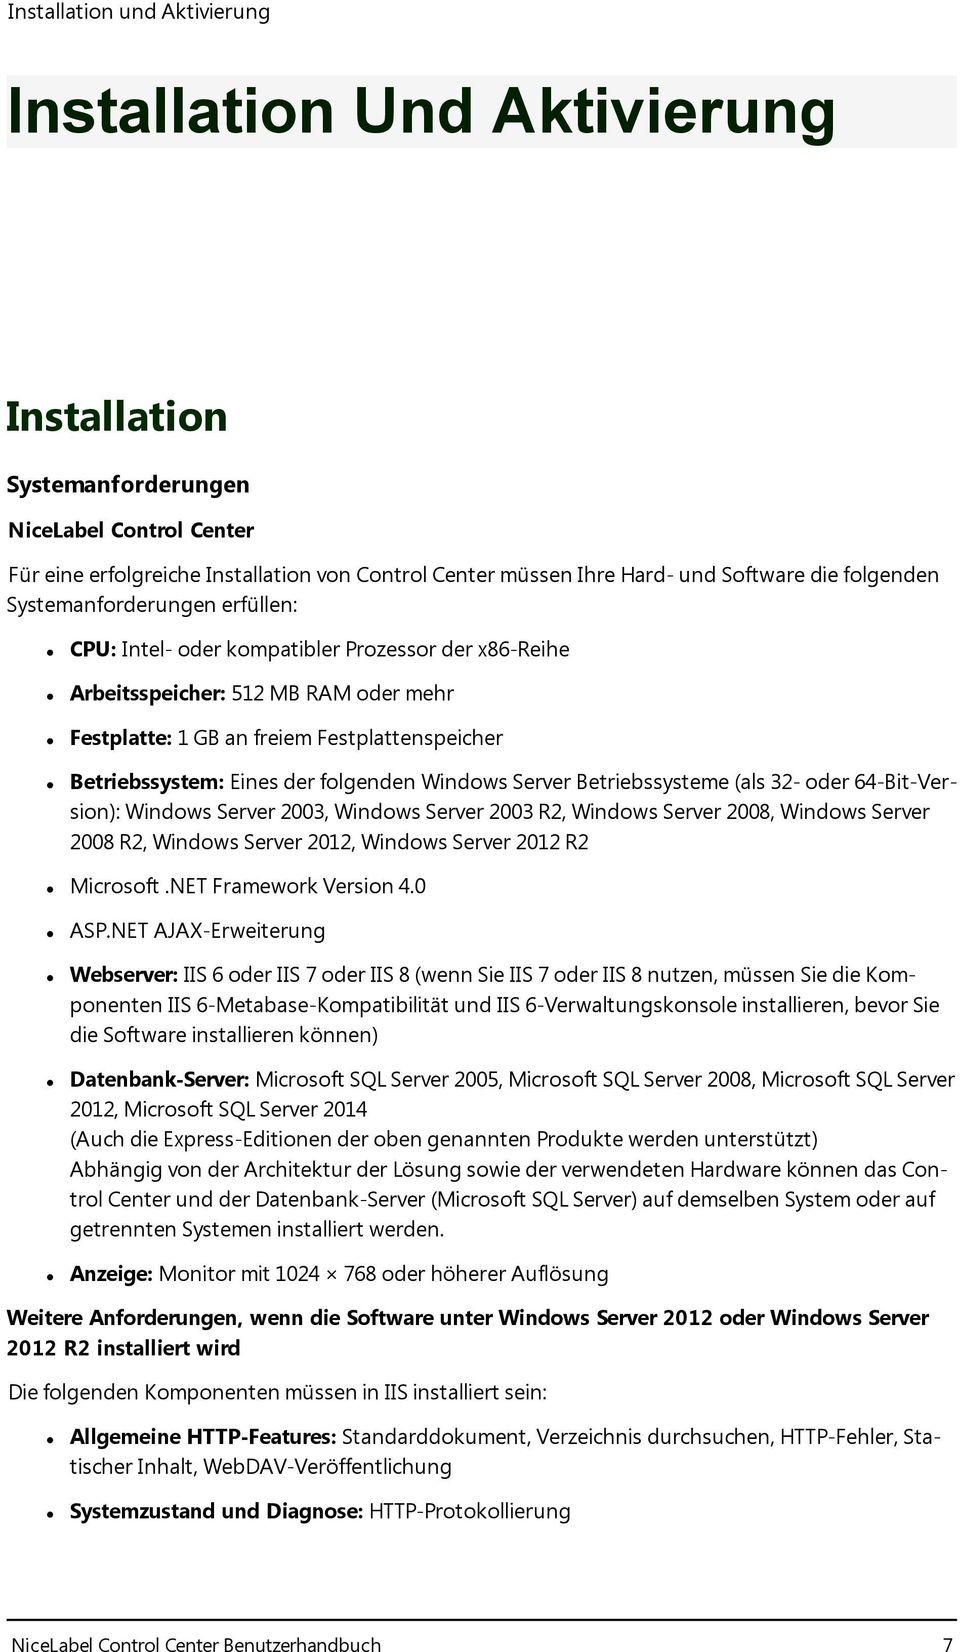 Betriebssystem: Eines der folgenden Windows Server Betriebssysteme (als 32- oder 64-Bit-Version): Windows Server 2003, Windows Server 2003 R2, Windows Server 2008, Windows Server 2008 R2, Windows